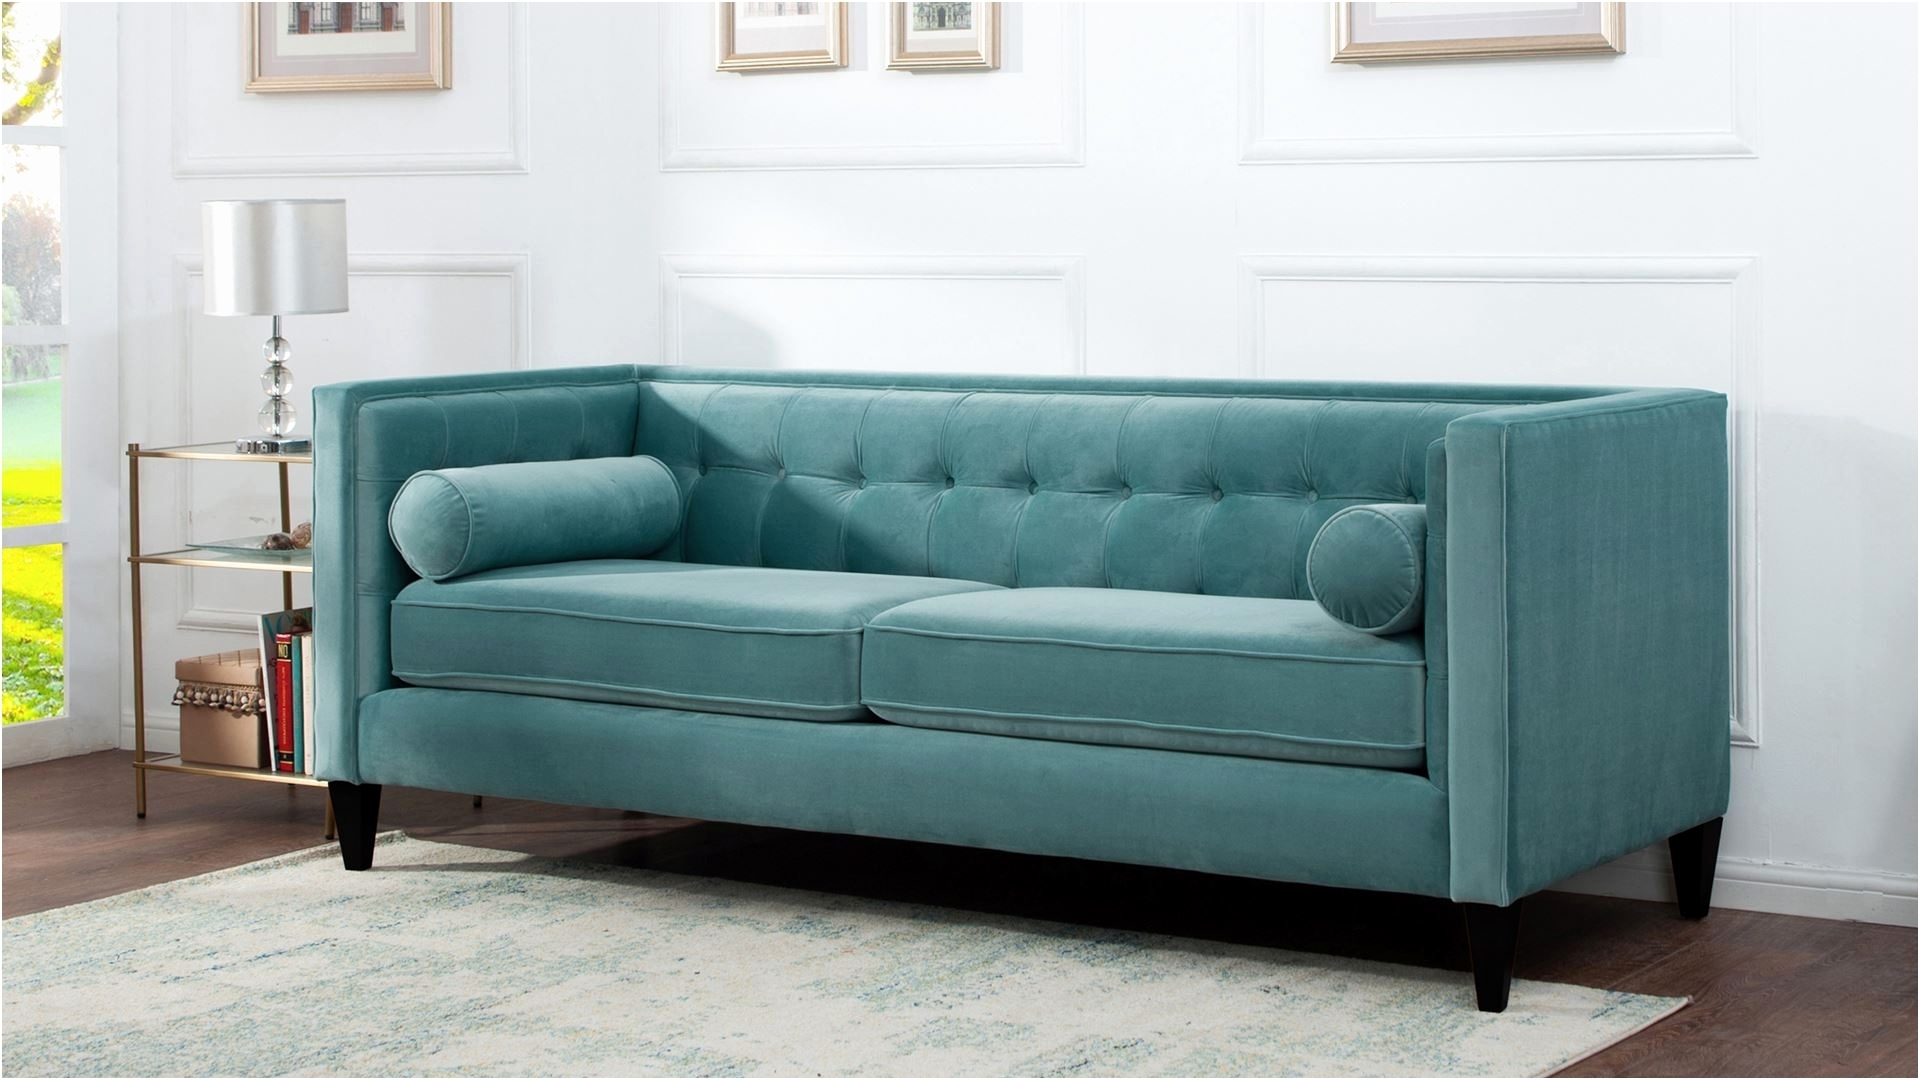 - Showing Photos Of Turquoise Sofas (View 11 Of 20 Photos)